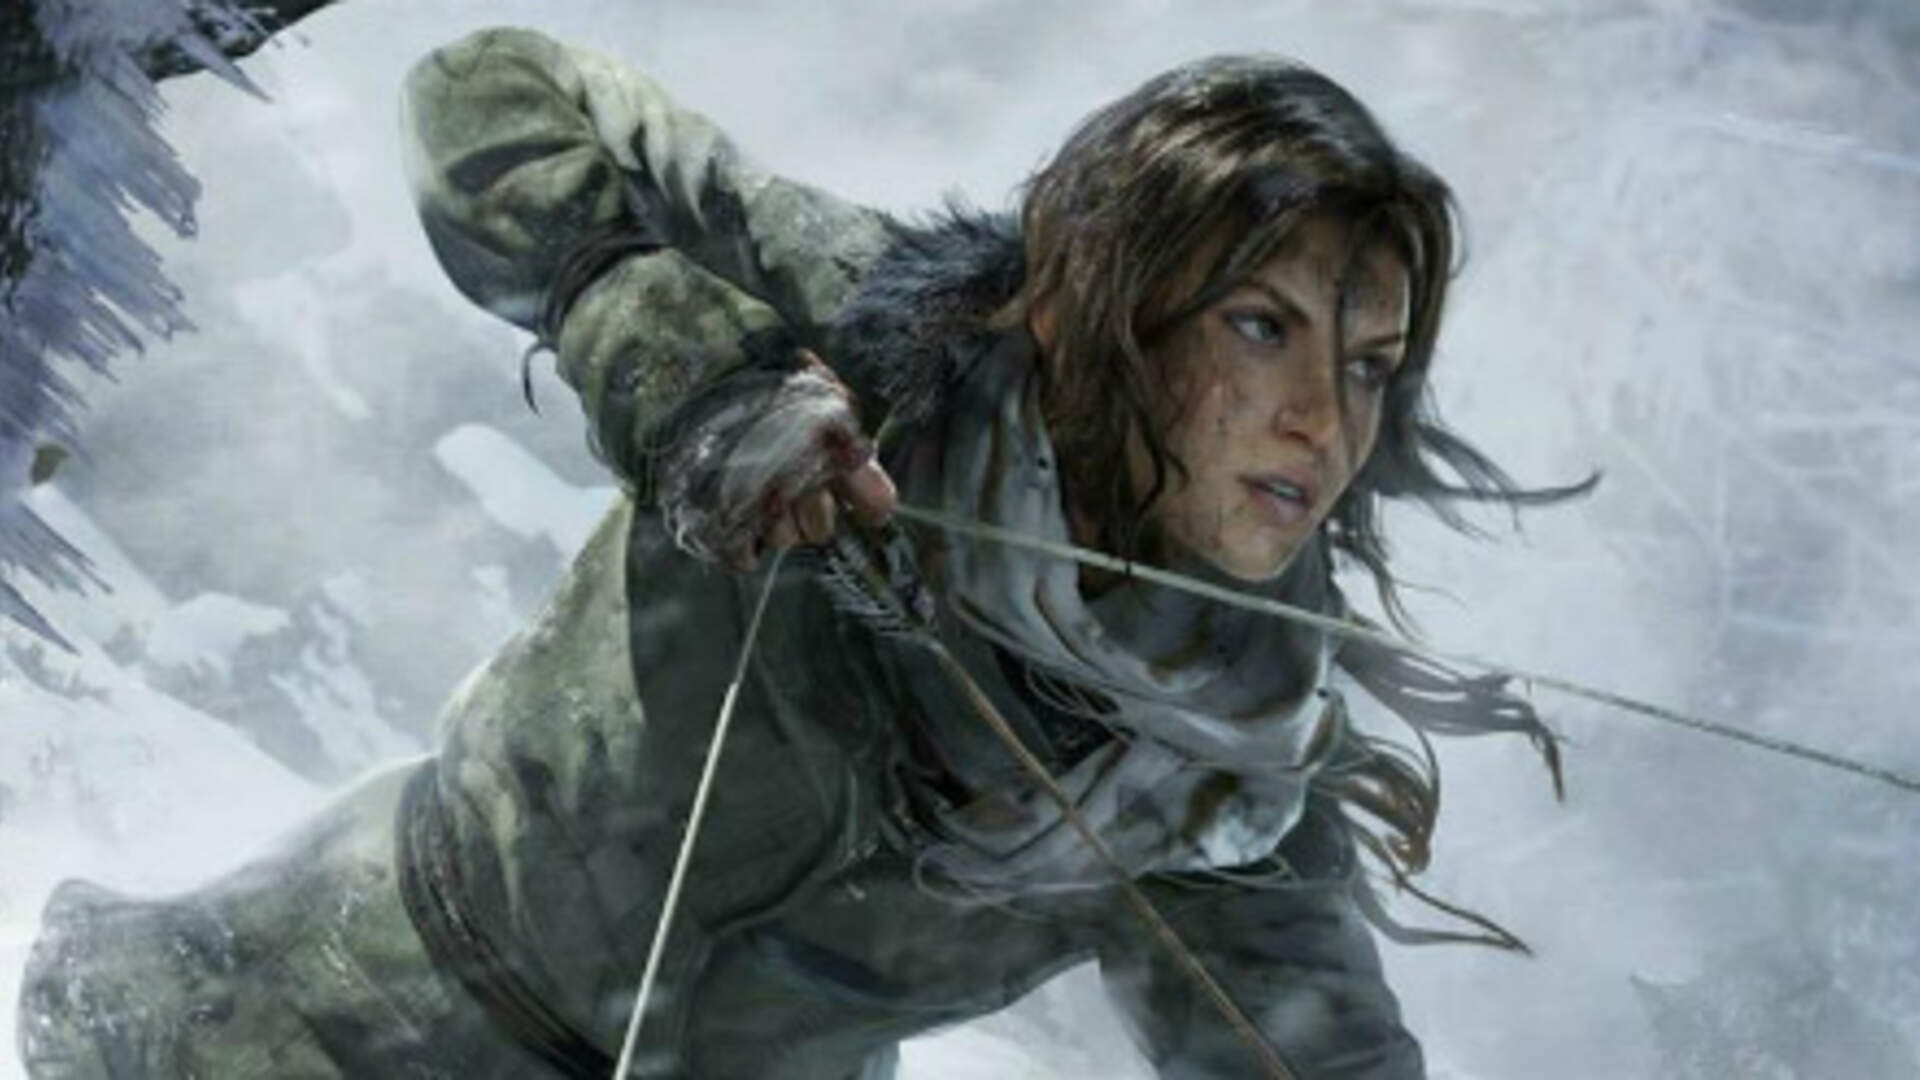 Square Enix Announces the Existence of a New Tomb Raider Game [Update]